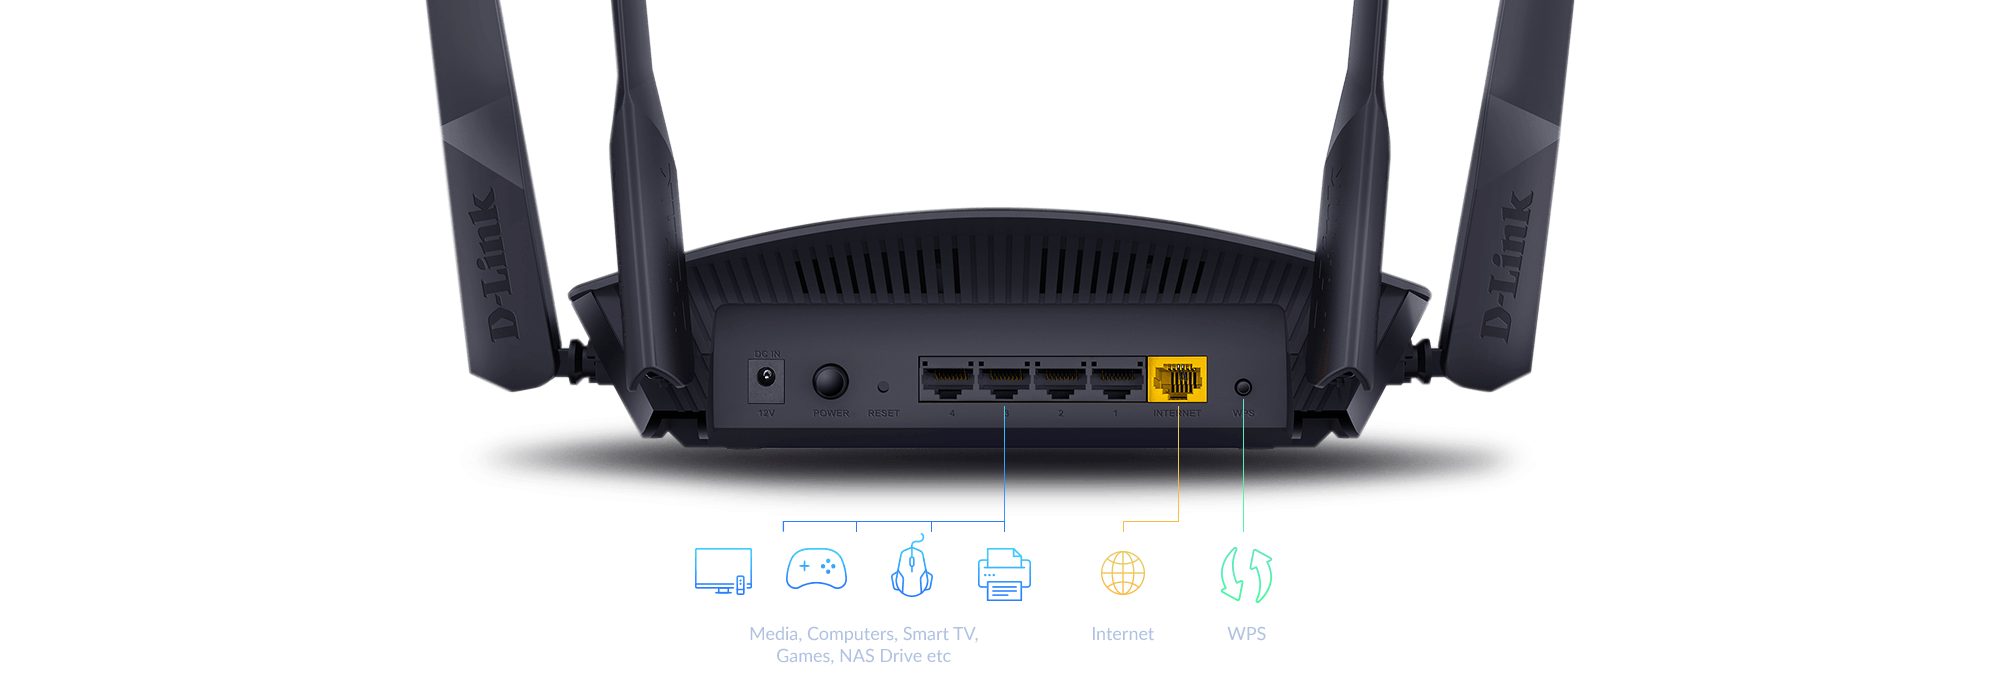 Diagram showing DIR-X1860 AX1800 Wi-Fi 6 Router ports